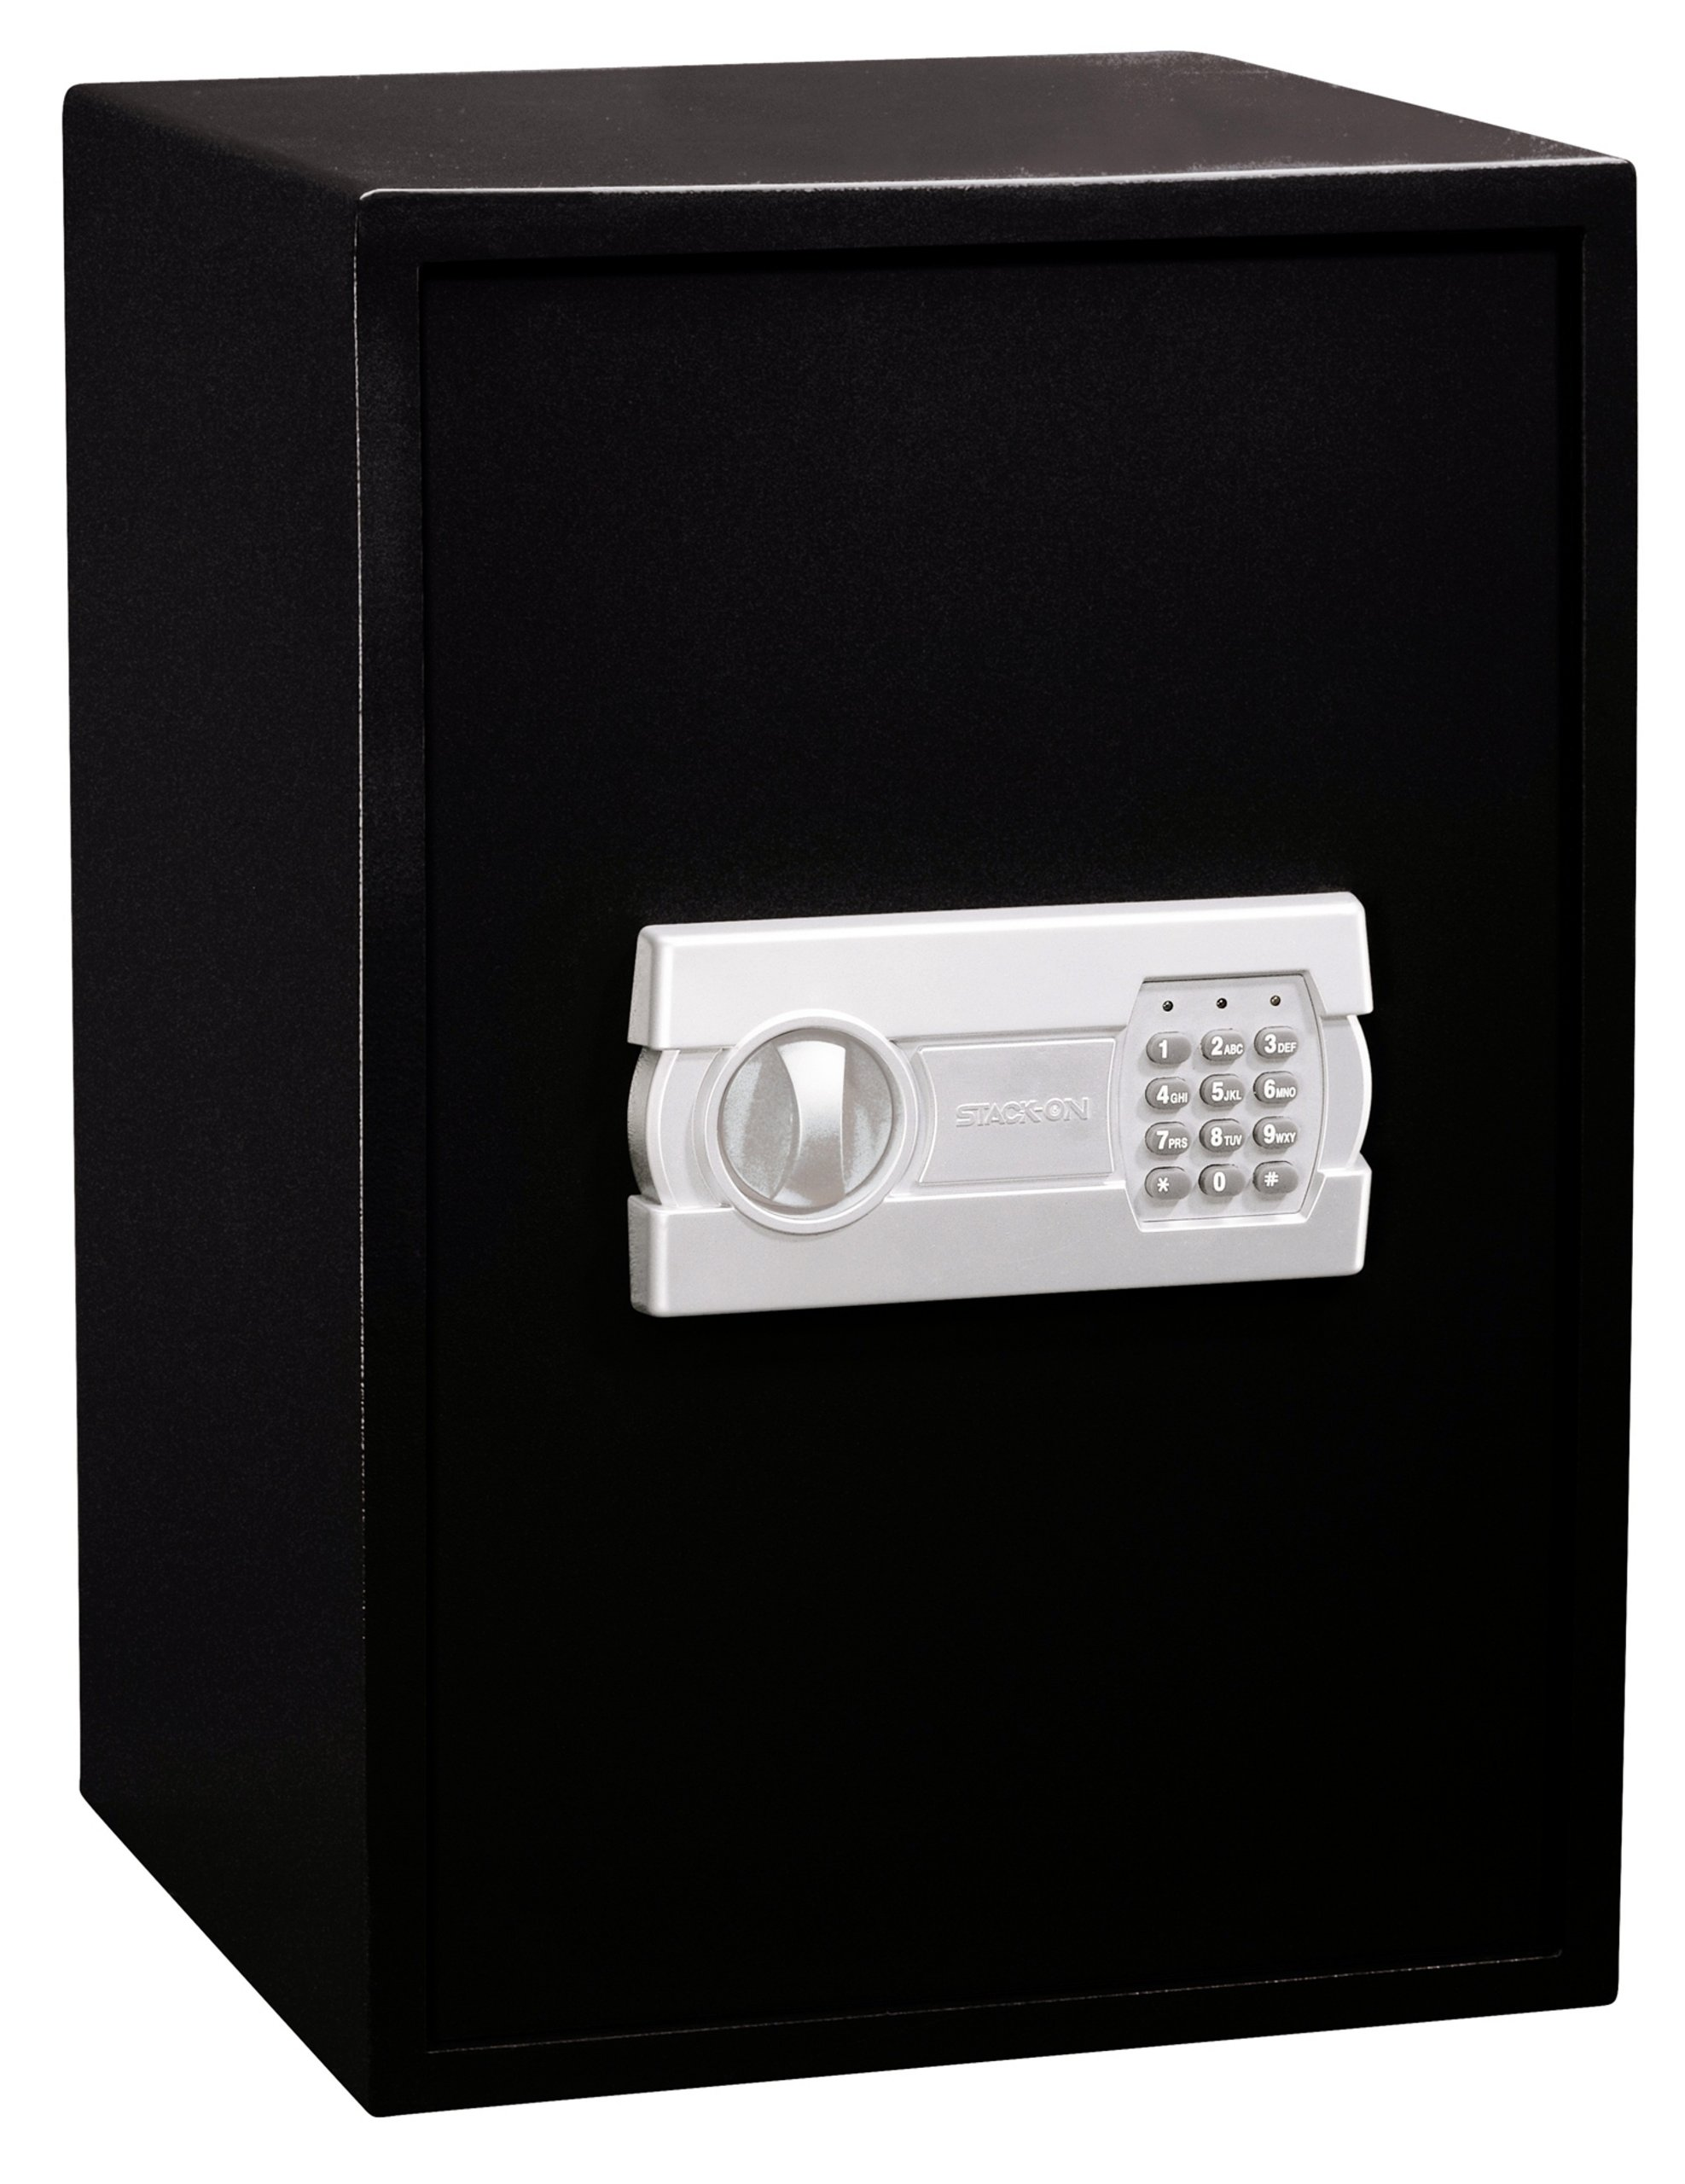 STACK-ON PS-1520 Gun Safe